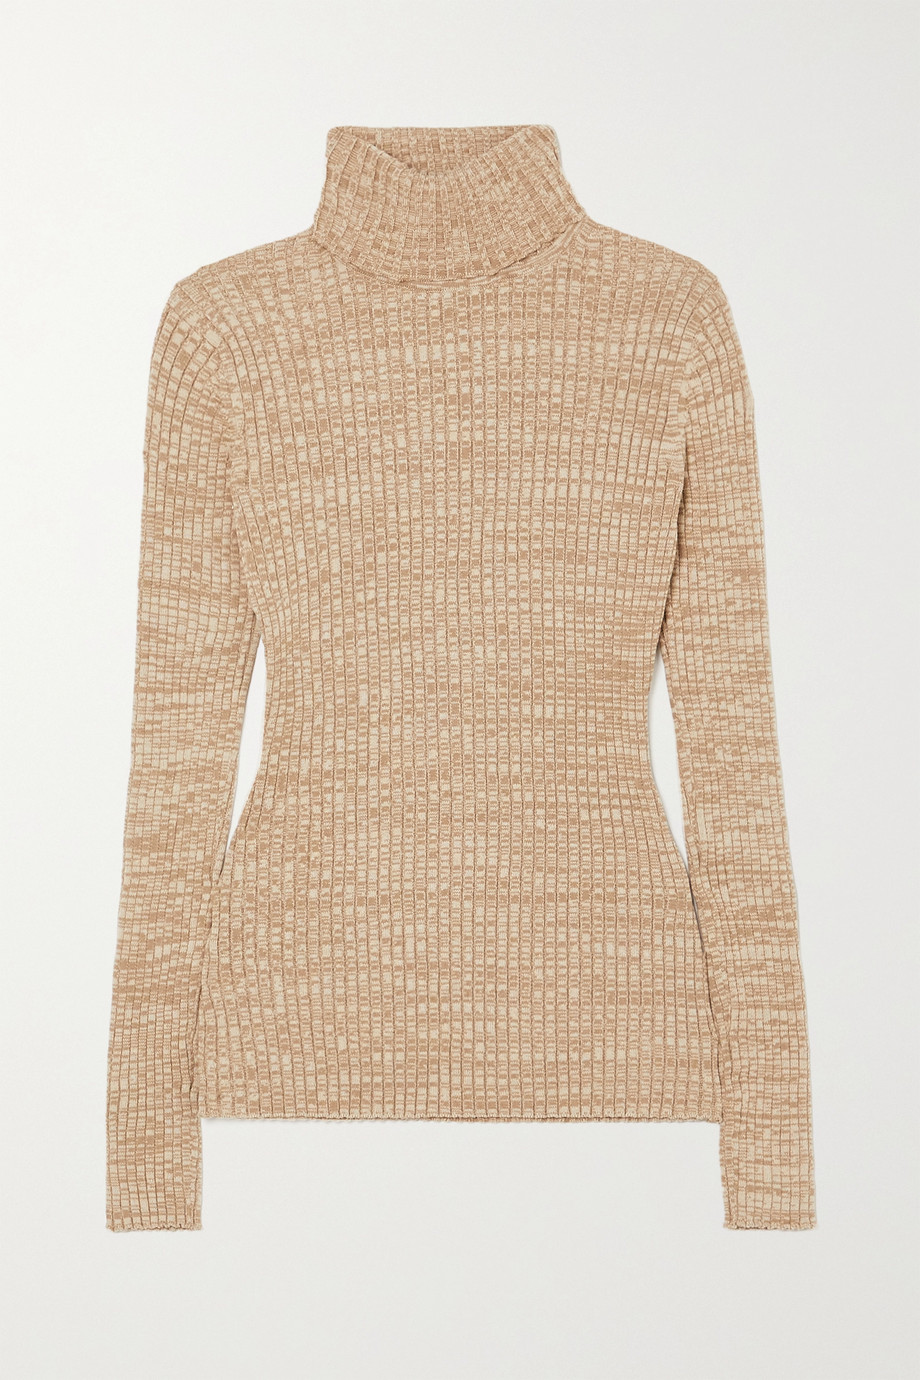 ANNA QUAN Heather ribbed cotton turtleneck sweater